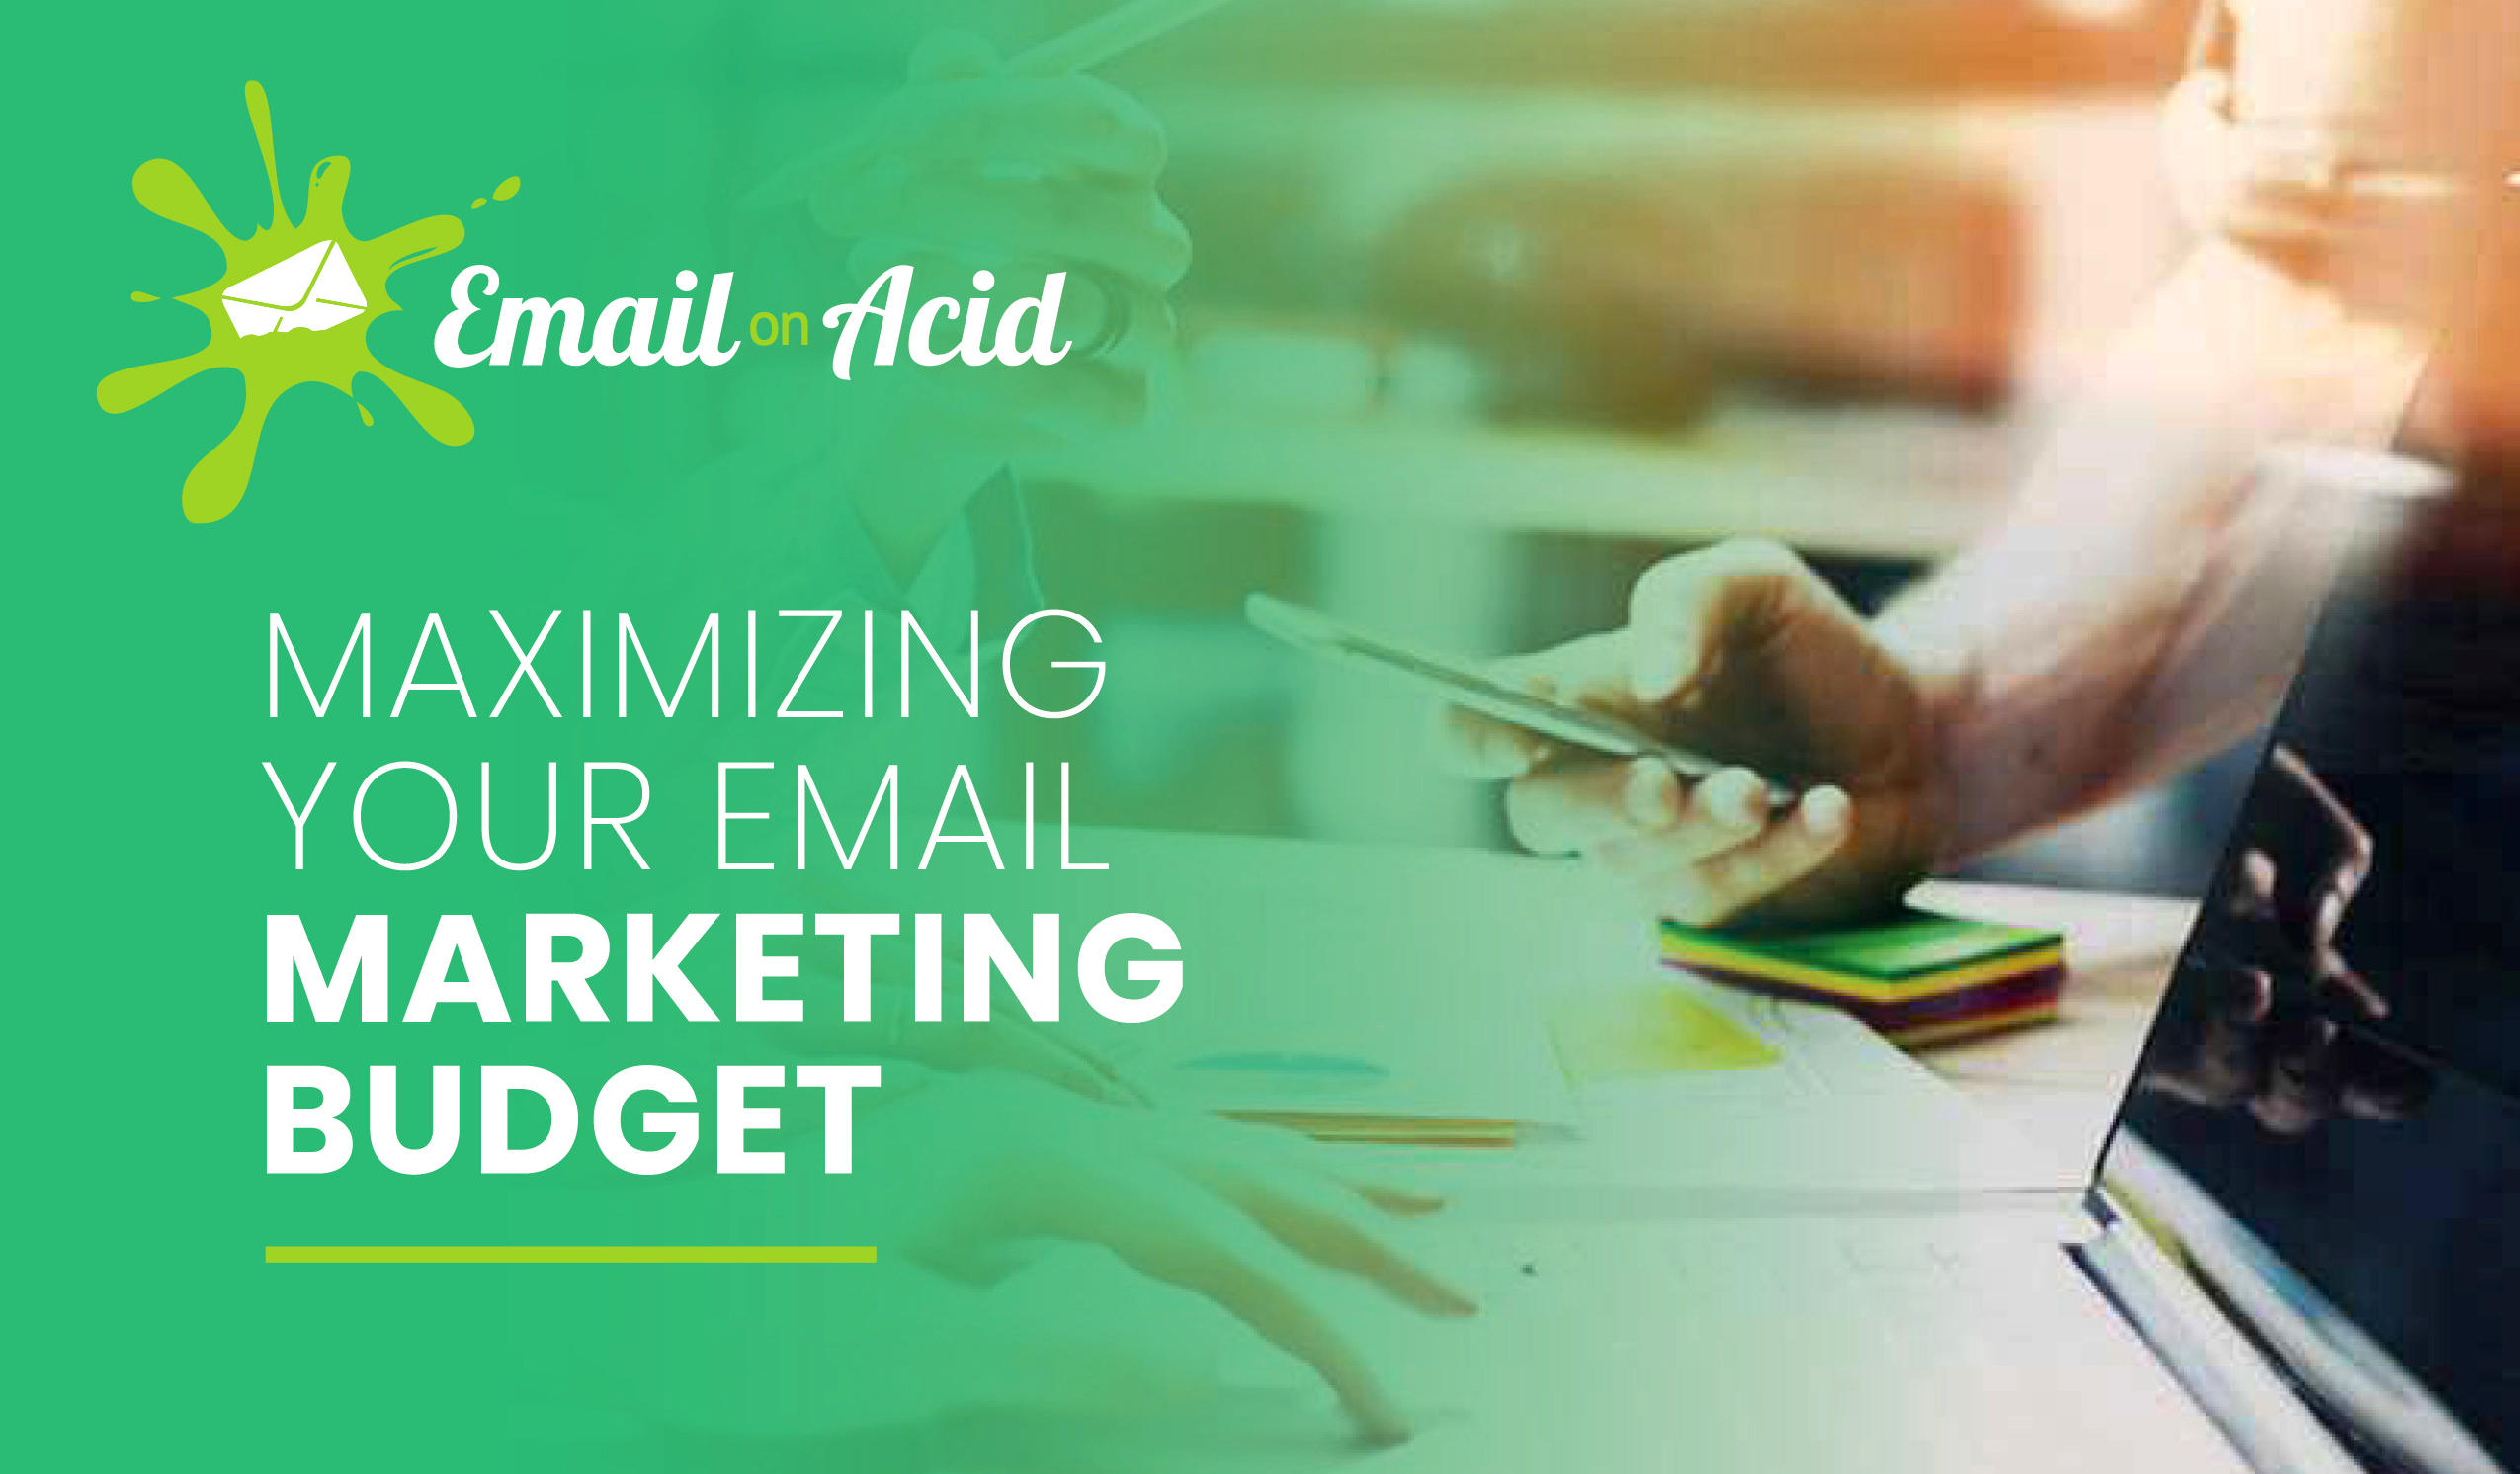 team budgets for email marketing